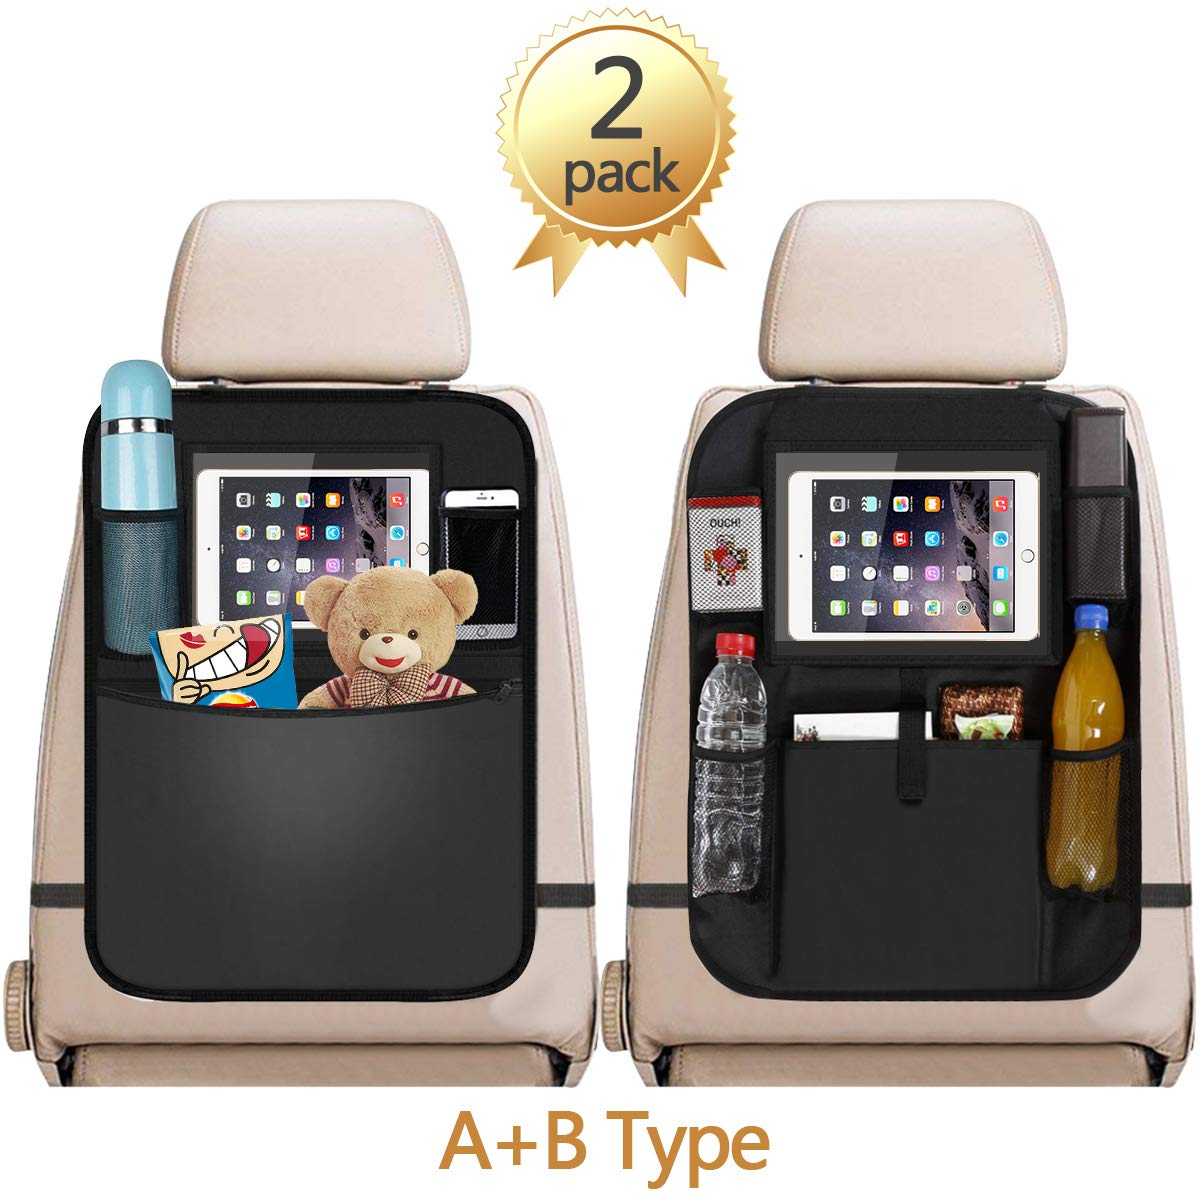 Car Back Seat Organizer, 2Pcs Oxford Waterproof Car Front Seat Protector, Multi-Pocket Car Hanging Storage Bag for iPad Tablet Bottle Drink Tissue Box Toys Vehicles Travel Accessories Acehome